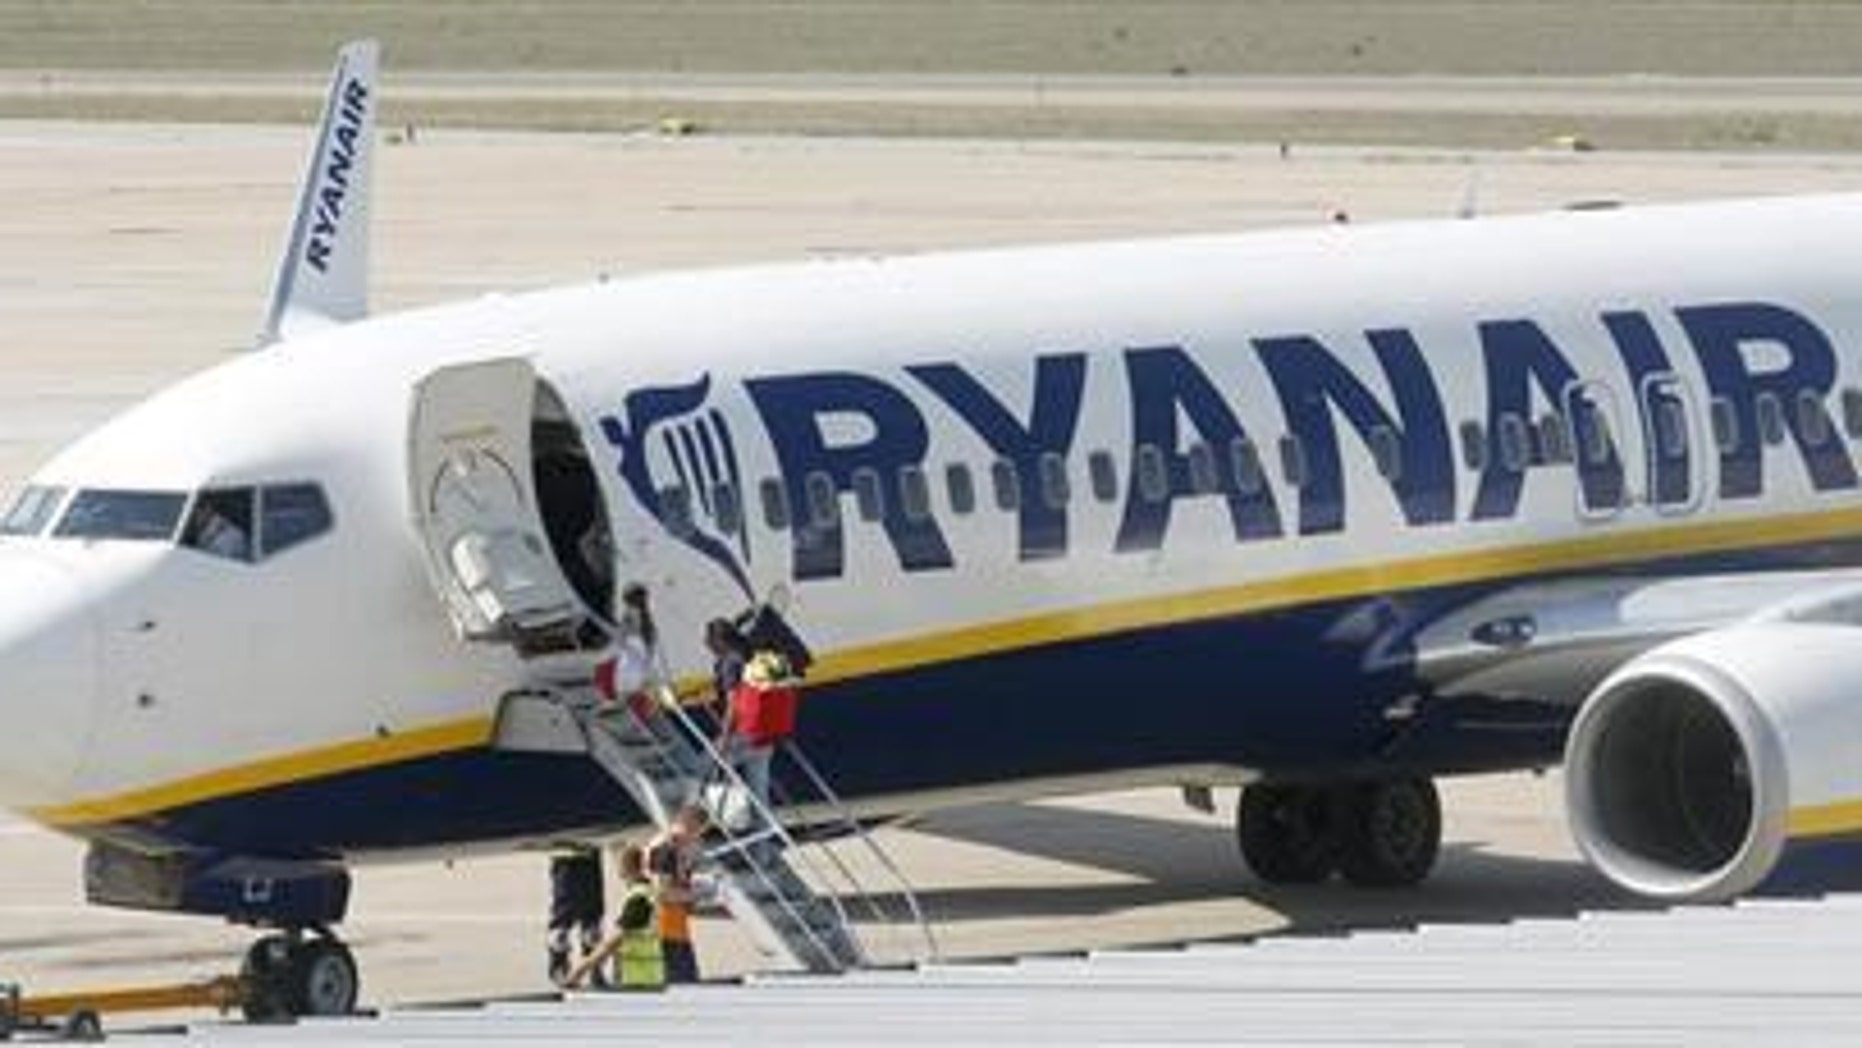 Ryanair ground crew left a shocking image for passengers at Dublin Airport last week.